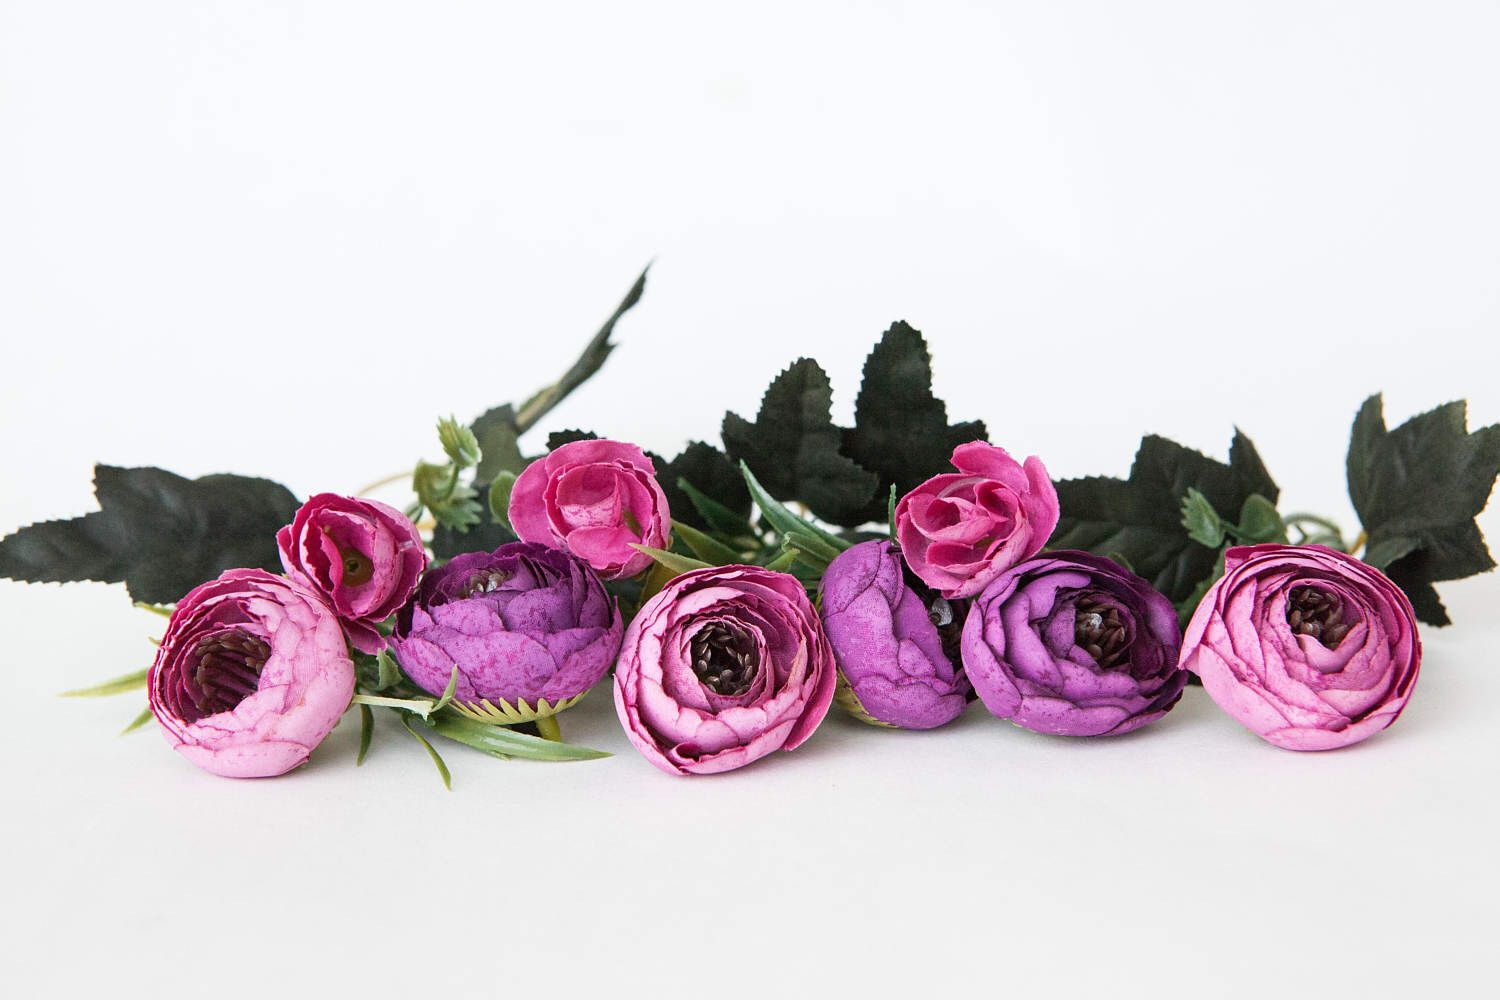 9 Small Mini Vintage Inspired Ranunculus Buds In Bright Pink And